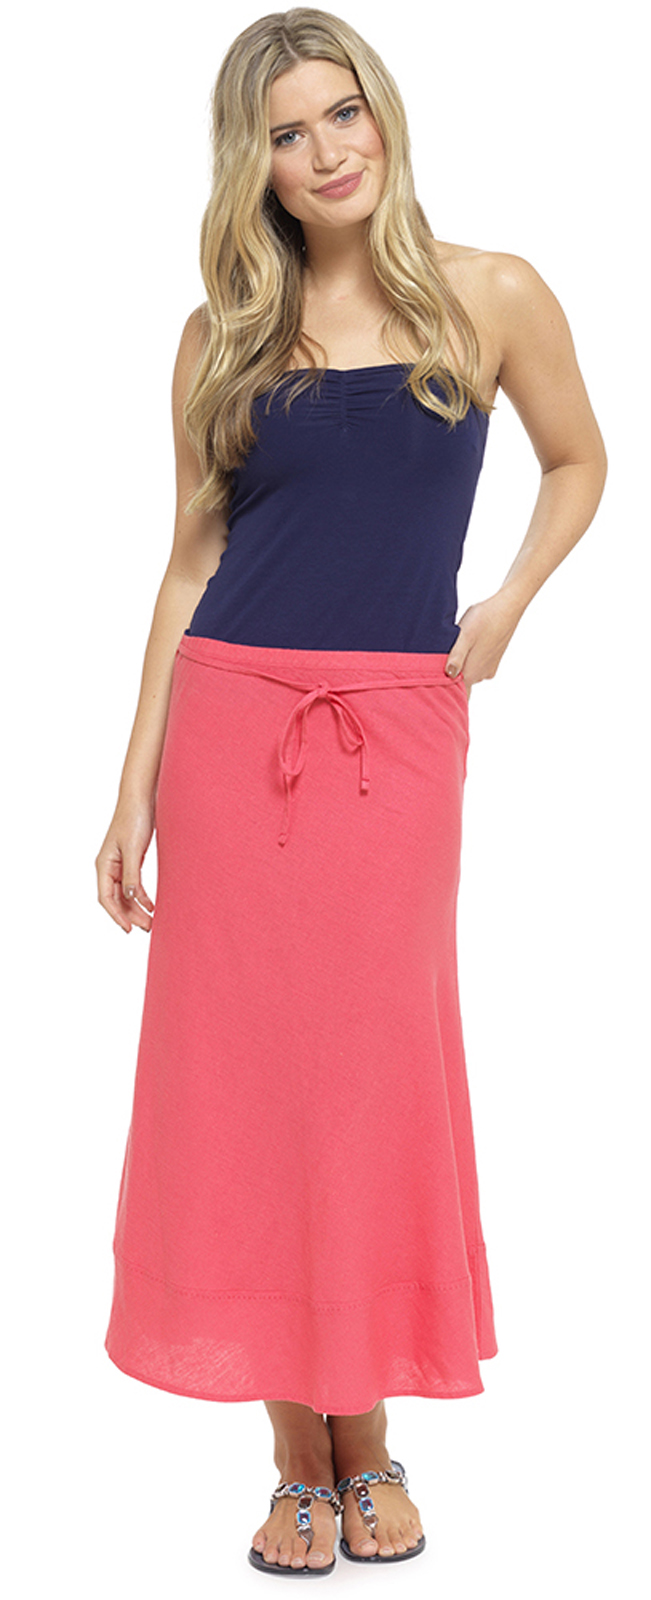 Excellent Details About Aeropostale Womens Full Length Lace Insert Maxi Skirt